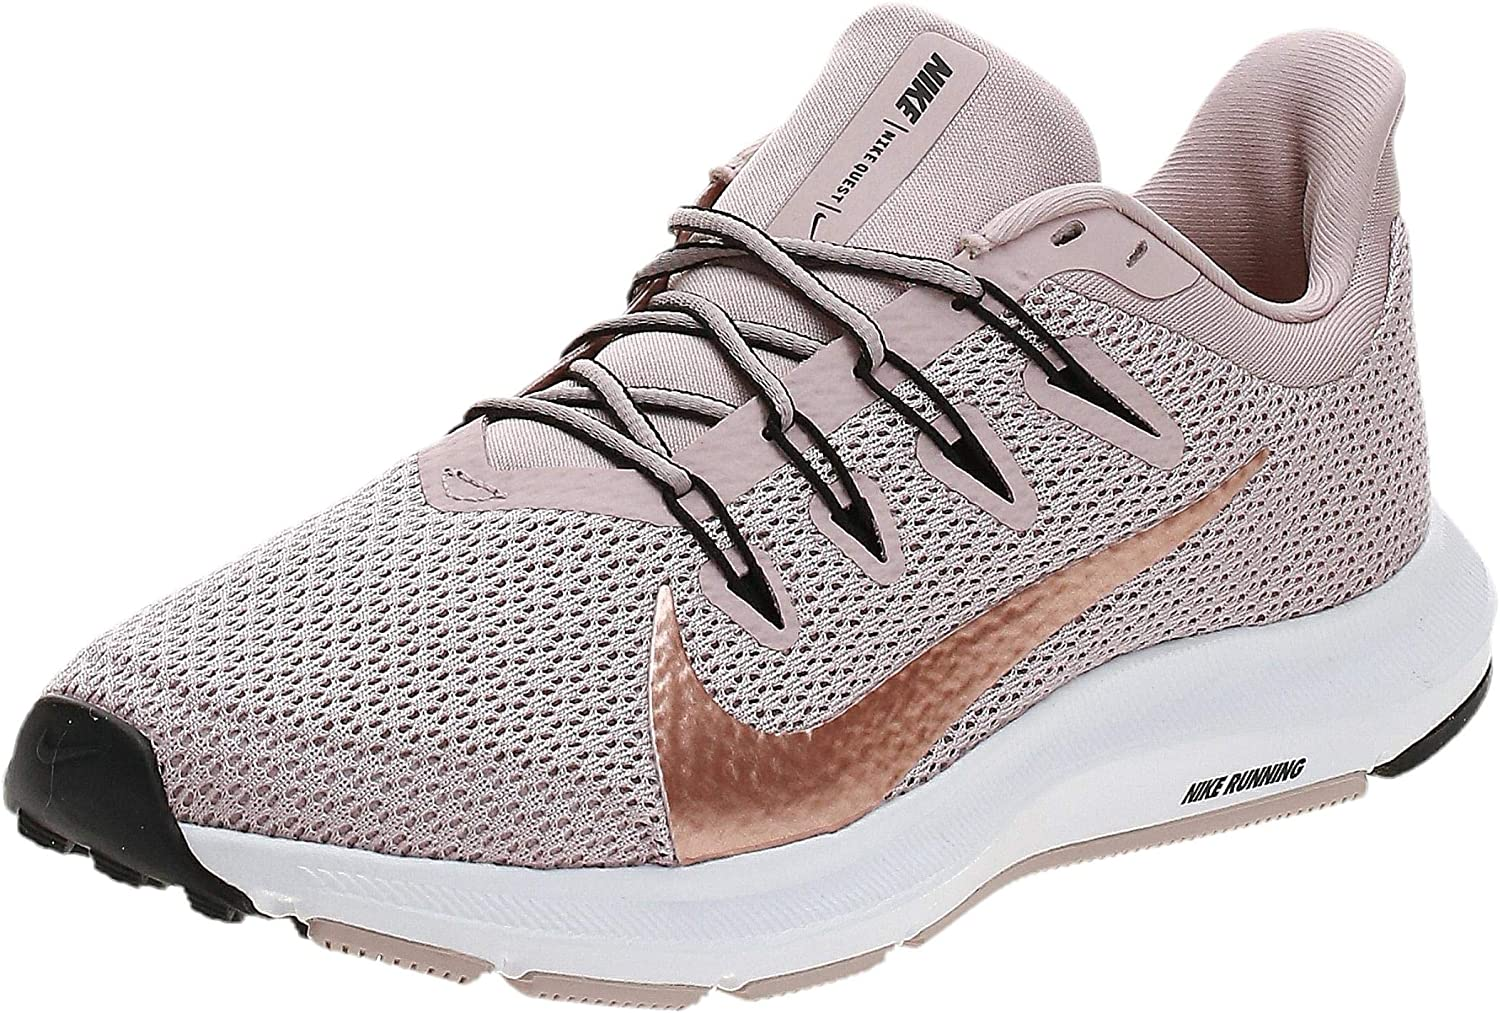 Nike Quest 2 Womens Running Trainers CI3803 Sneakers Shoes (UK 6 US 8.5 EU 40, Stone Mauve red Bronze 200)